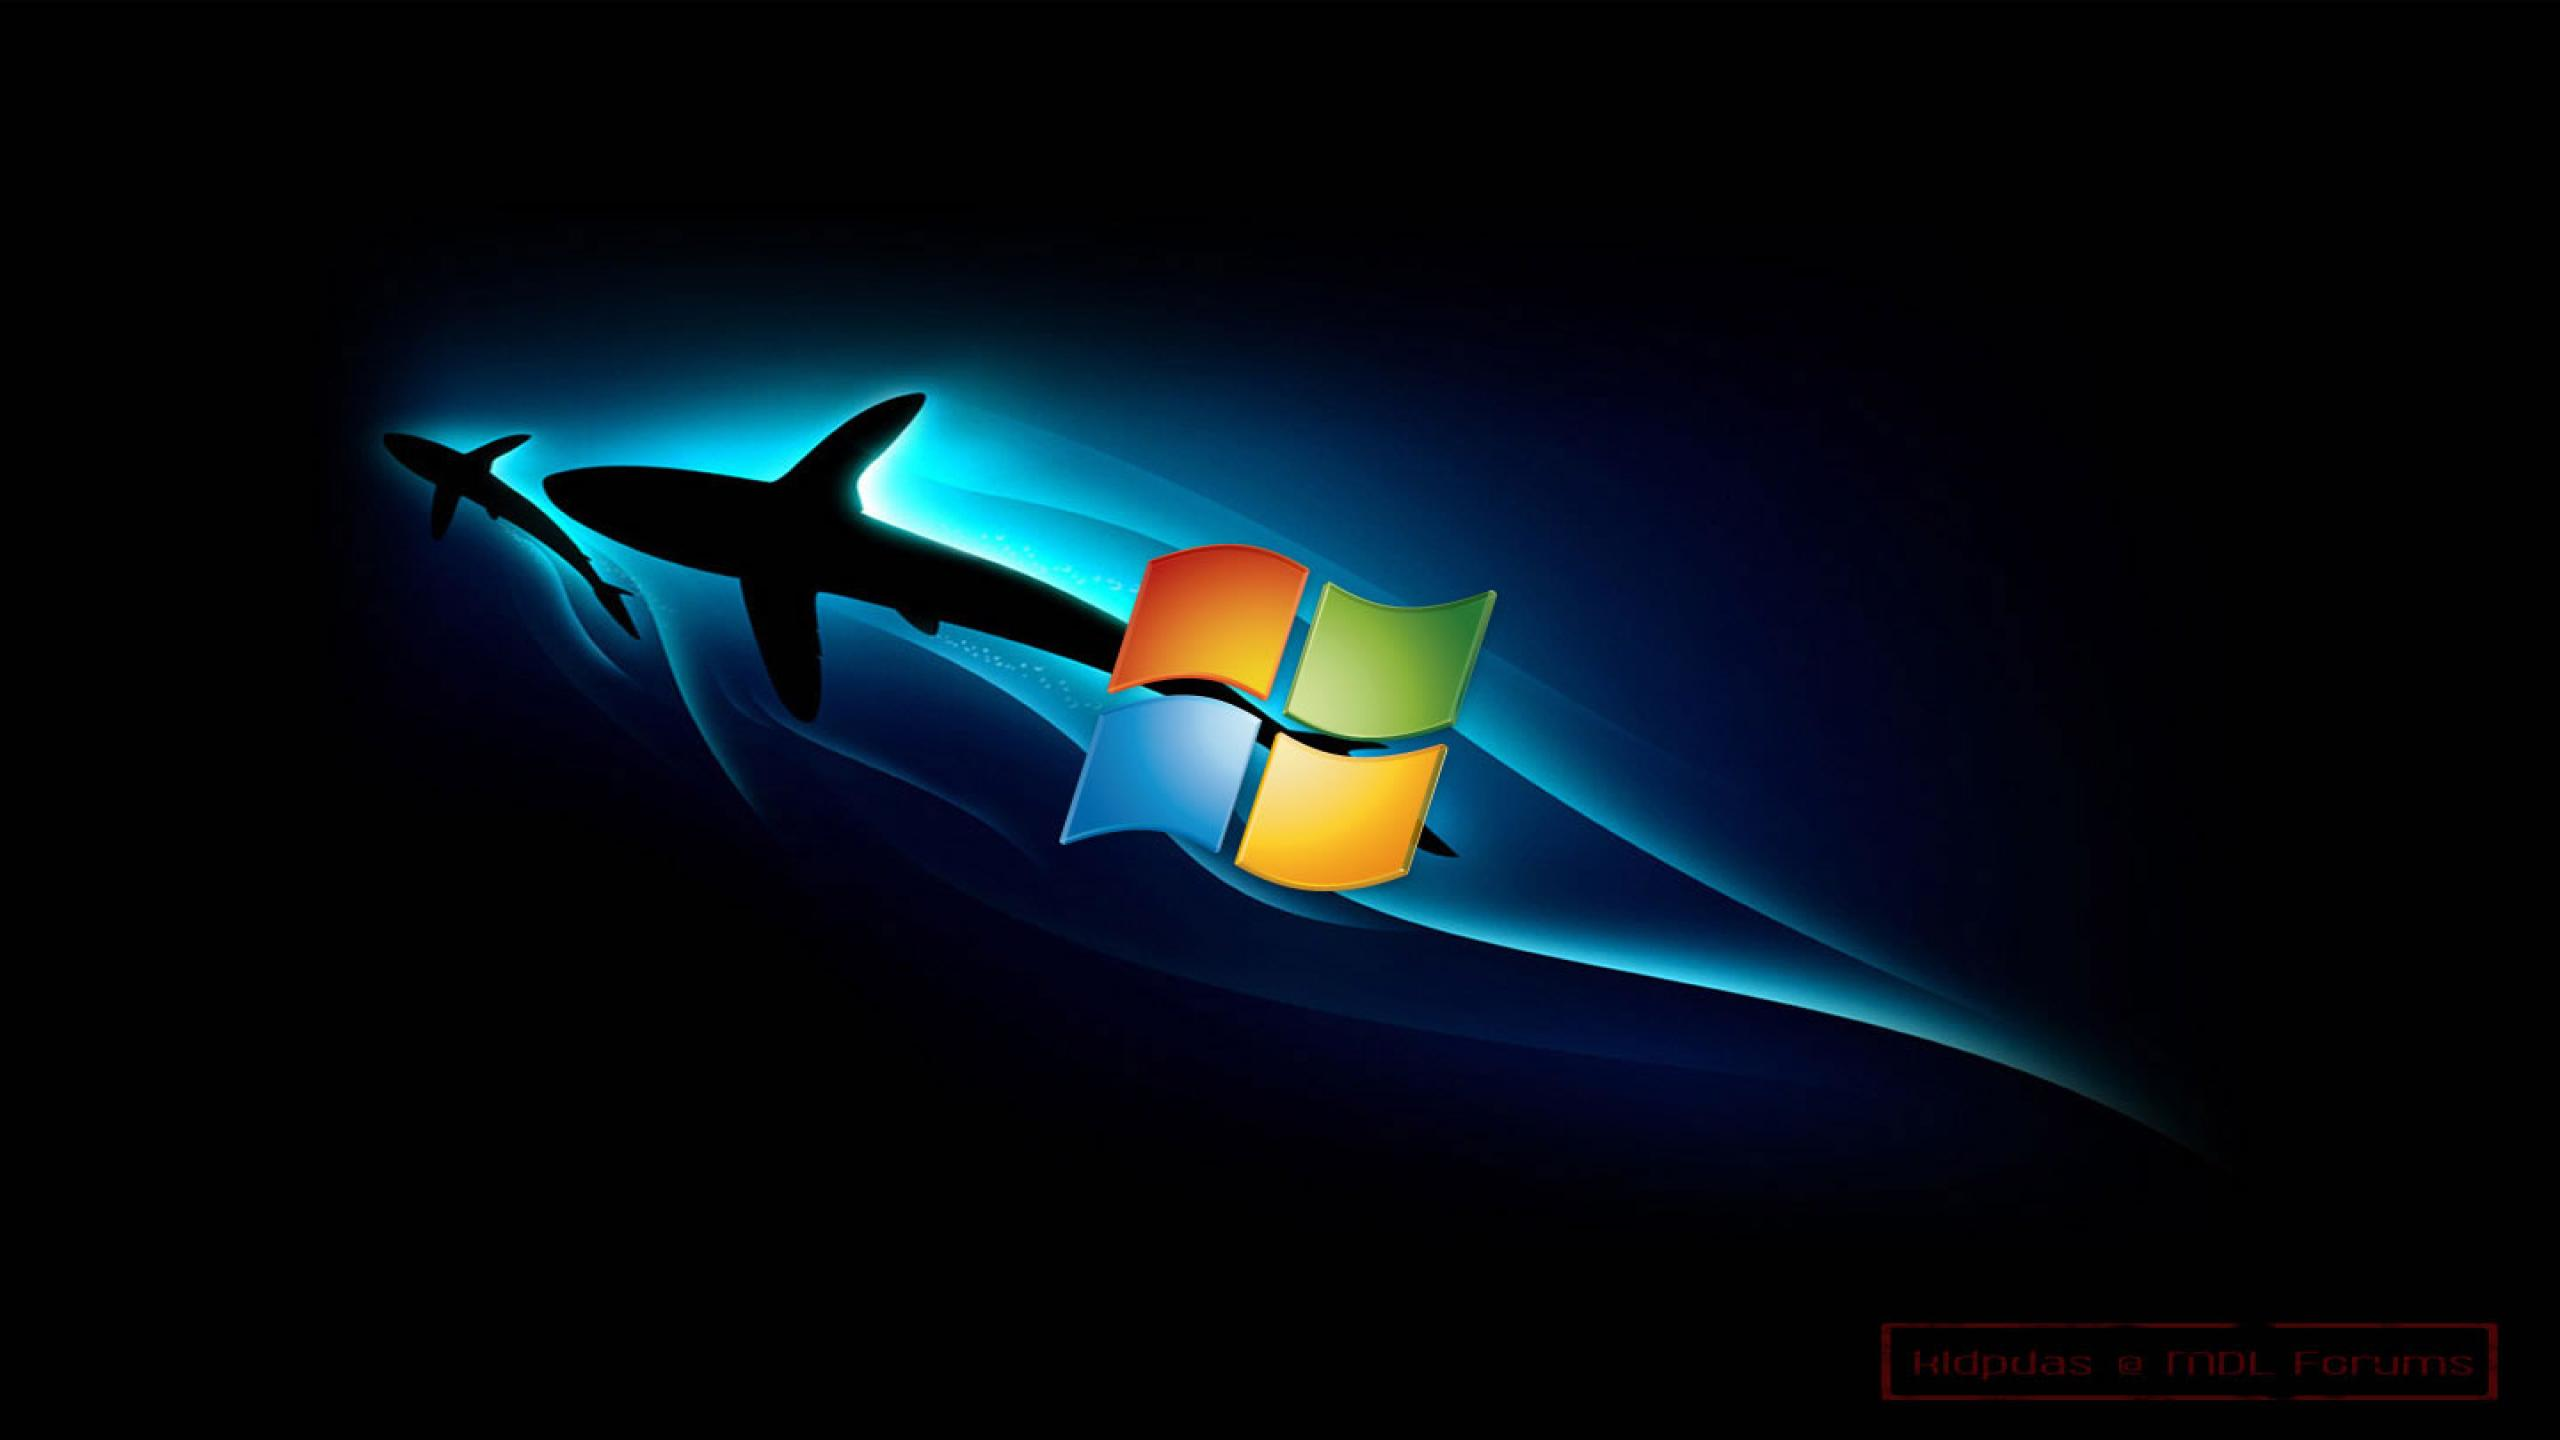 Fantastic Windows 8 HD Wallpapers 2560x1440 Other Wallpapers 2560x1440 2560x1440